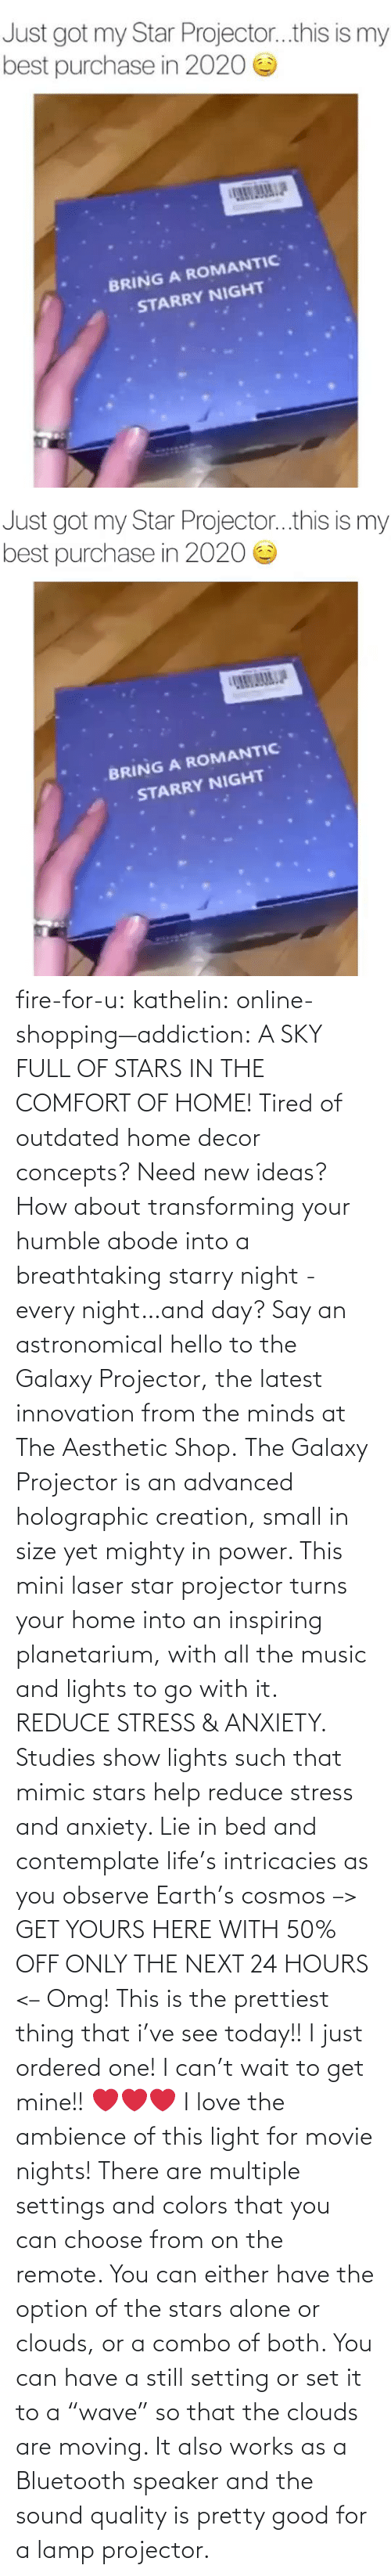 "Aesthetic: fire-for-u:  kathelin: online-shopping—addiction:  A SKY FULL OF STARS IN THE COMFORT OF HOME! Tired of outdated home decor concepts? Need new ideas? How about transforming your humble abode into a breathtaking starry night - every night…and day? Say an astronomical hello to the Galaxy Projector, the latest innovation from the minds at The Aesthetic Shop. The Galaxy Projector is an advanced holographic creation, small in size yet mighty in power. This mini laser star projector turns your home into an inspiring planetarium, with all the music and lights to go with it. REDUCE STRESS & ANXIETY. Studies show lights such that mimic stars help reduce stress and anxiety. Lie in bed and contemplate life's intricacies as you observe Earth's cosmos  –> GET YOURS HERE WITH 50% OFF ONLY THE NEXT 24 HOURS <–   Omg! This is the prettiest thing that i've see today!! I just ordered one! I can't wait to get mine!! ❤️️❤️️❤️️  I love the ambience of this light for movie nights! There are multiple settings and colors that you can choose from on the remote. You can either have the option of the stars alone or clouds, or a combo of both. You can have a still setting or set it to a ""wave"" so that the clouds are moving. It also works as a Bluetooth speaker and the sound quality is pretty good for a lamp projector."